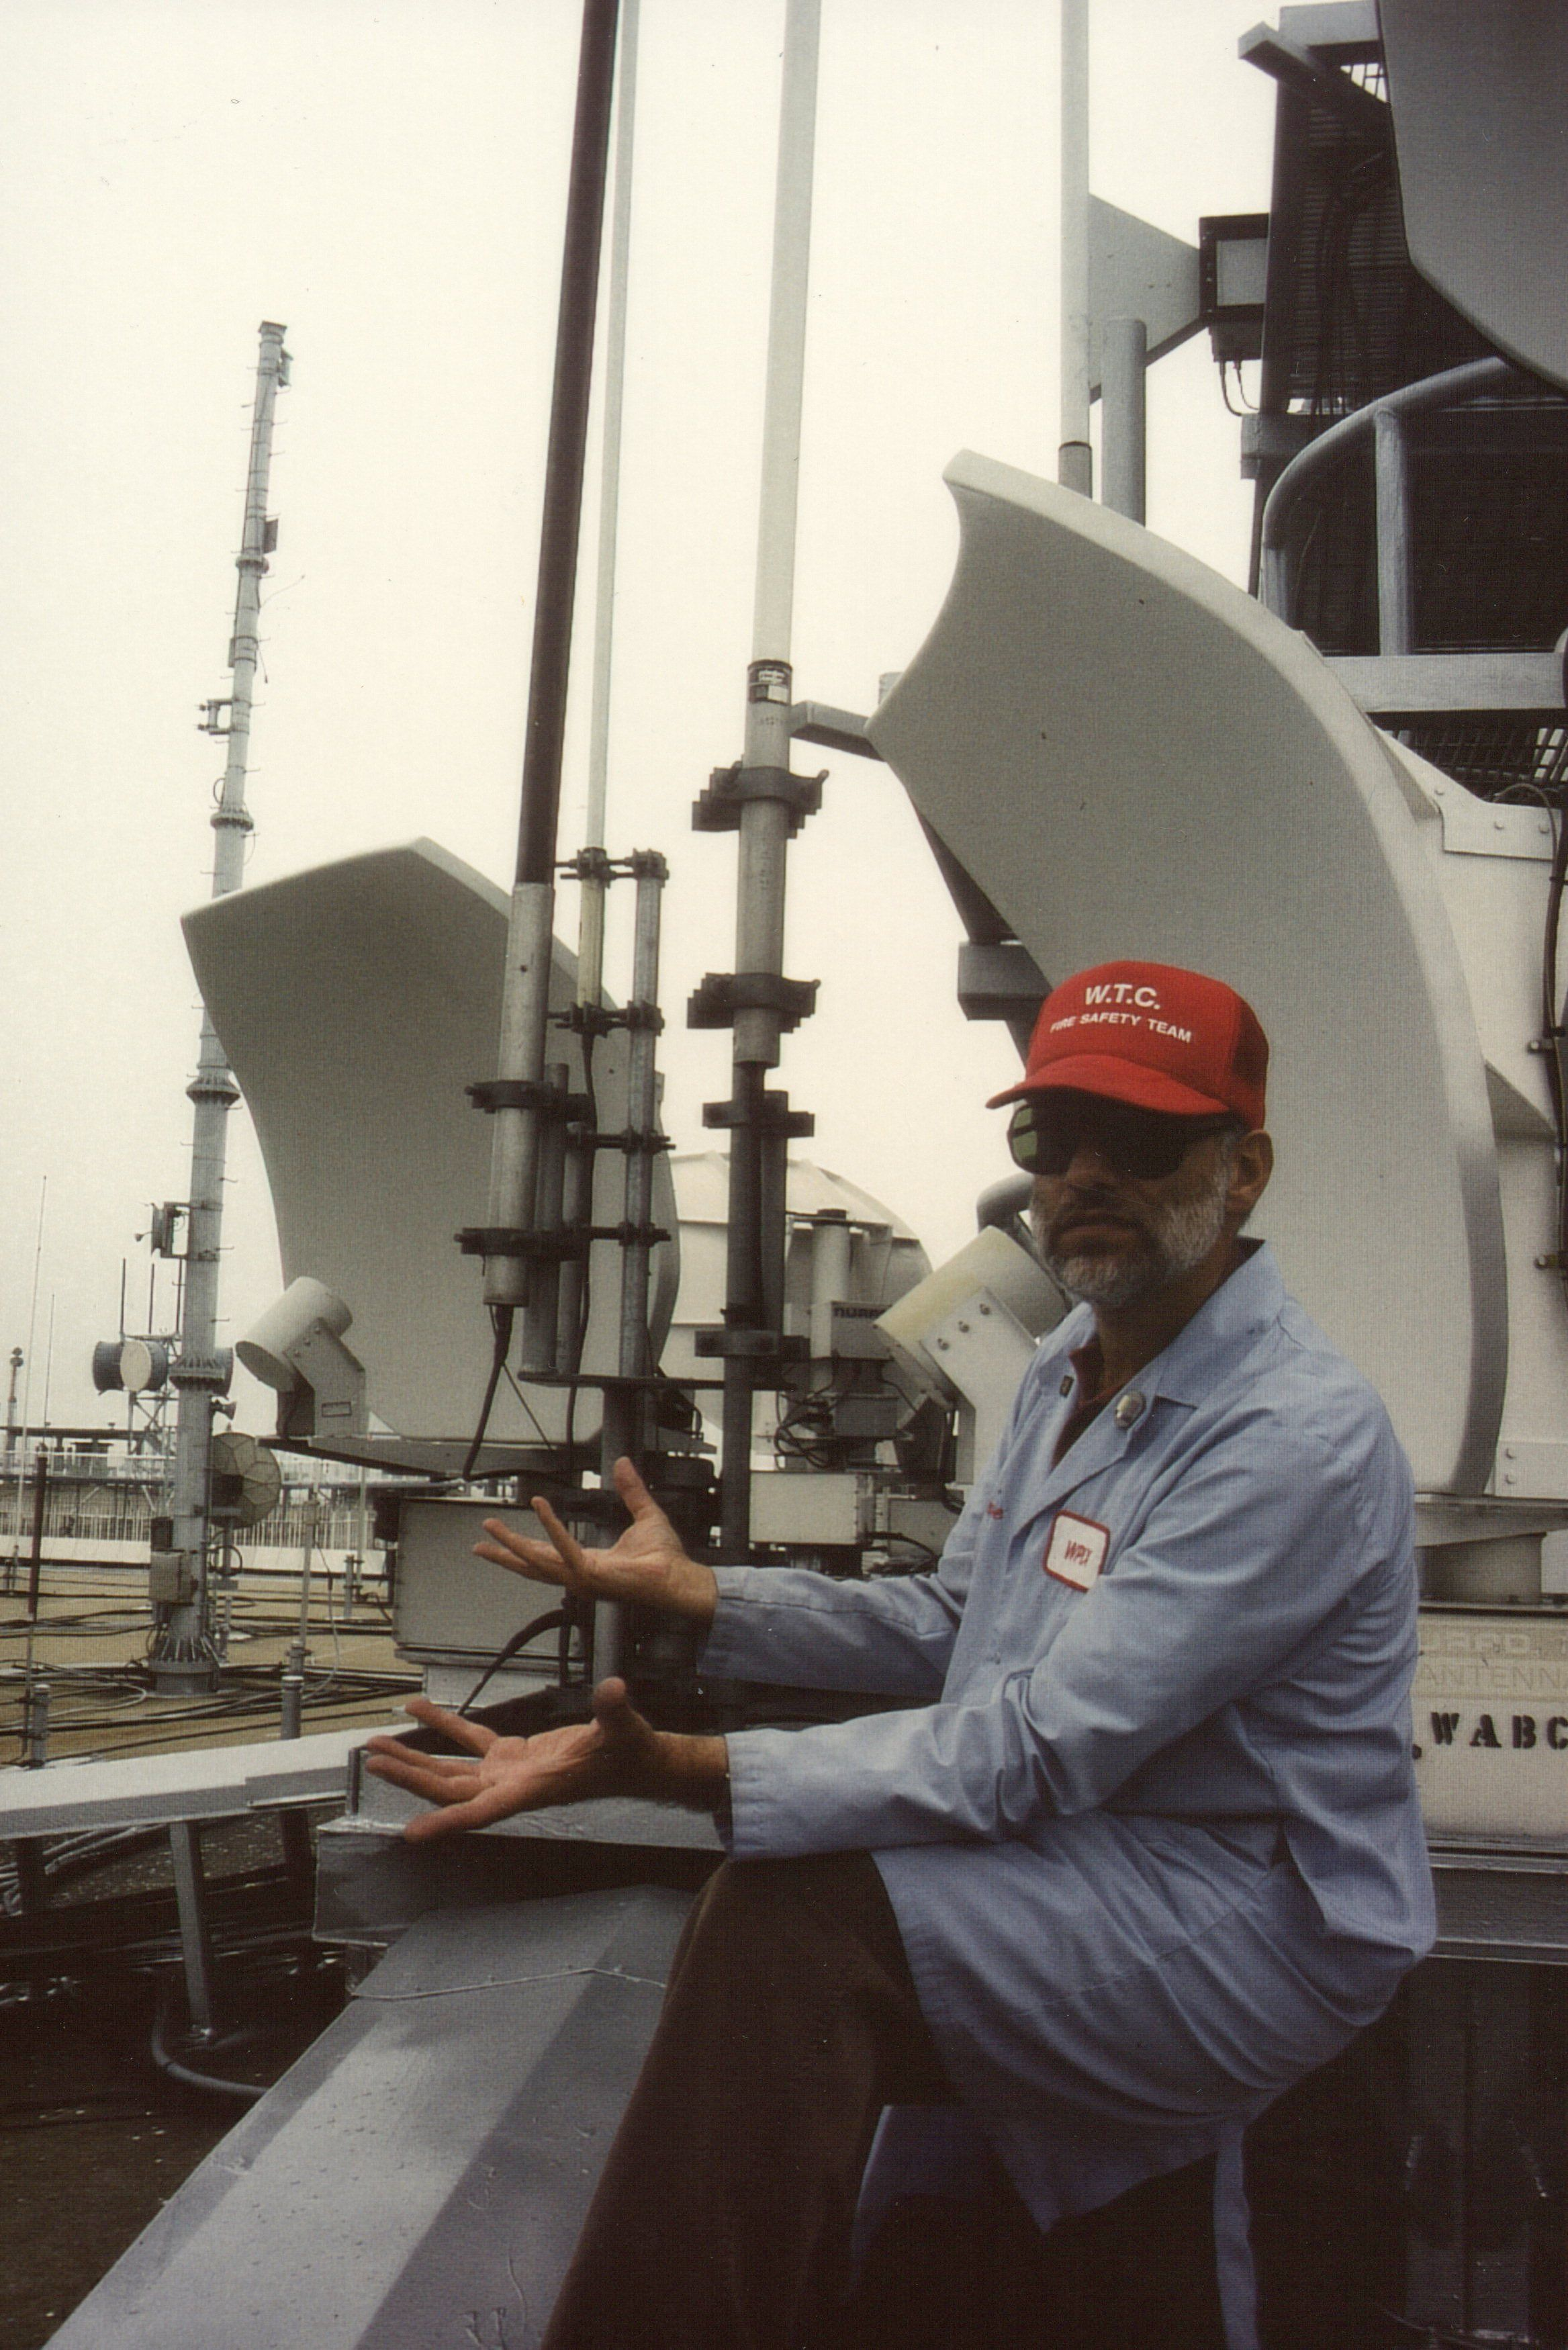 Steven Jacobson perched on the roof of One World Trade Center, pointing out the repeater transmitters, circa 1981.